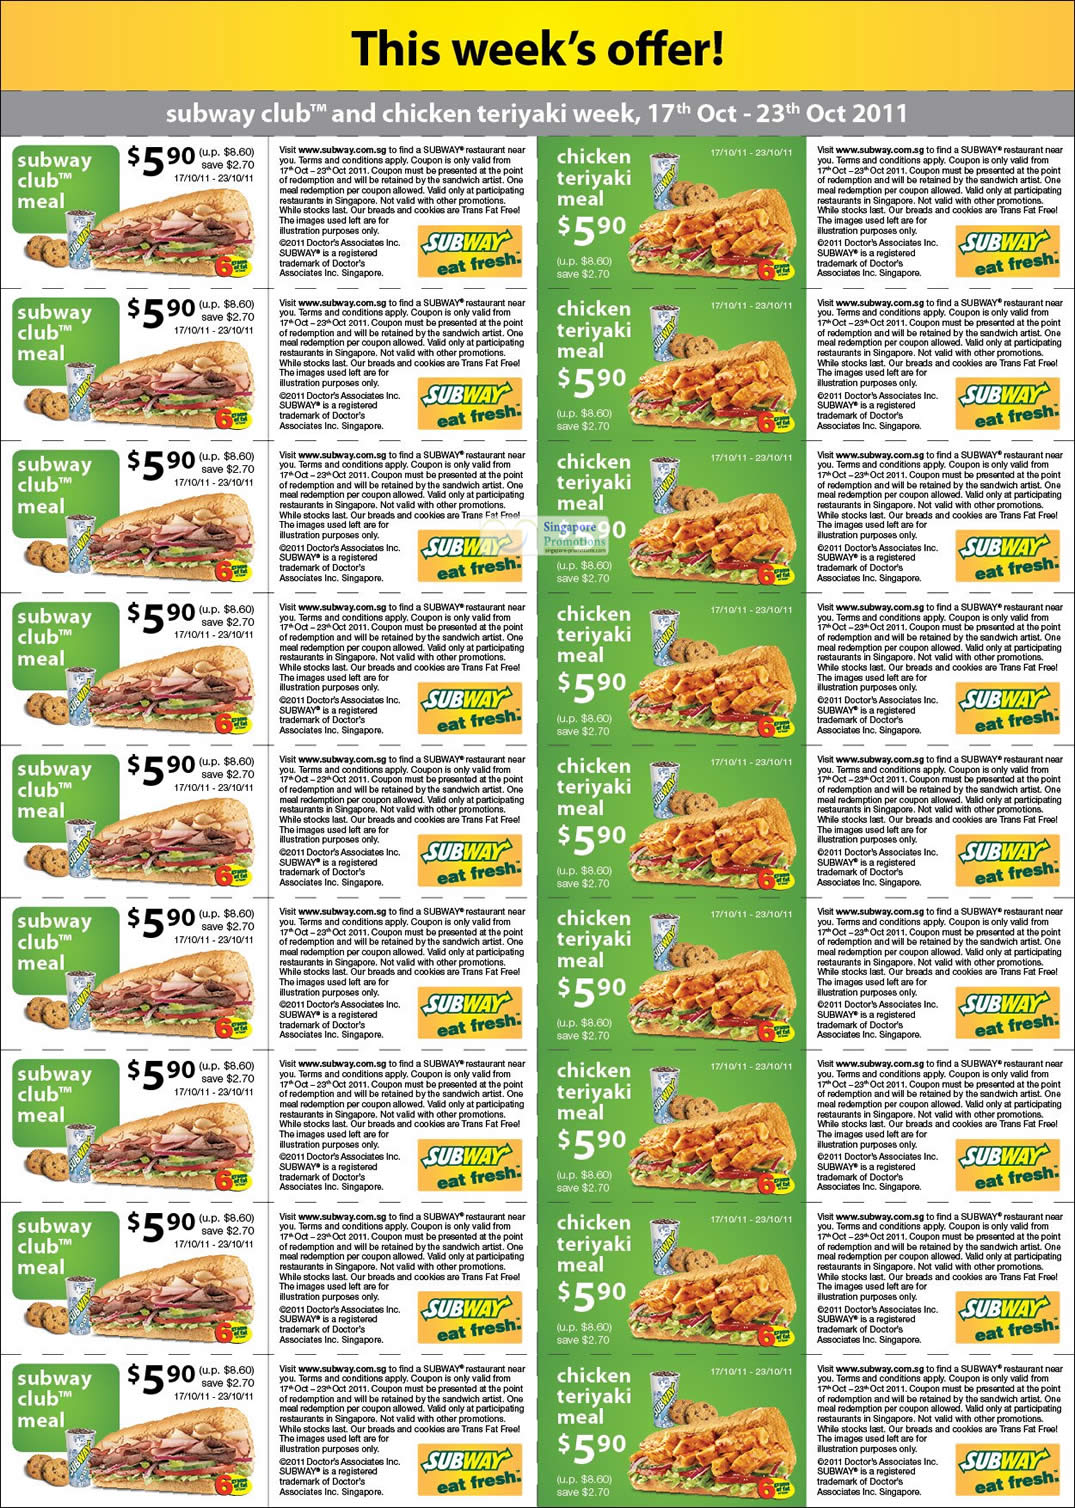 Citibank Online Sign In >> A4 Size Coupons » Subway Singapore 31% Off Subway Club ...